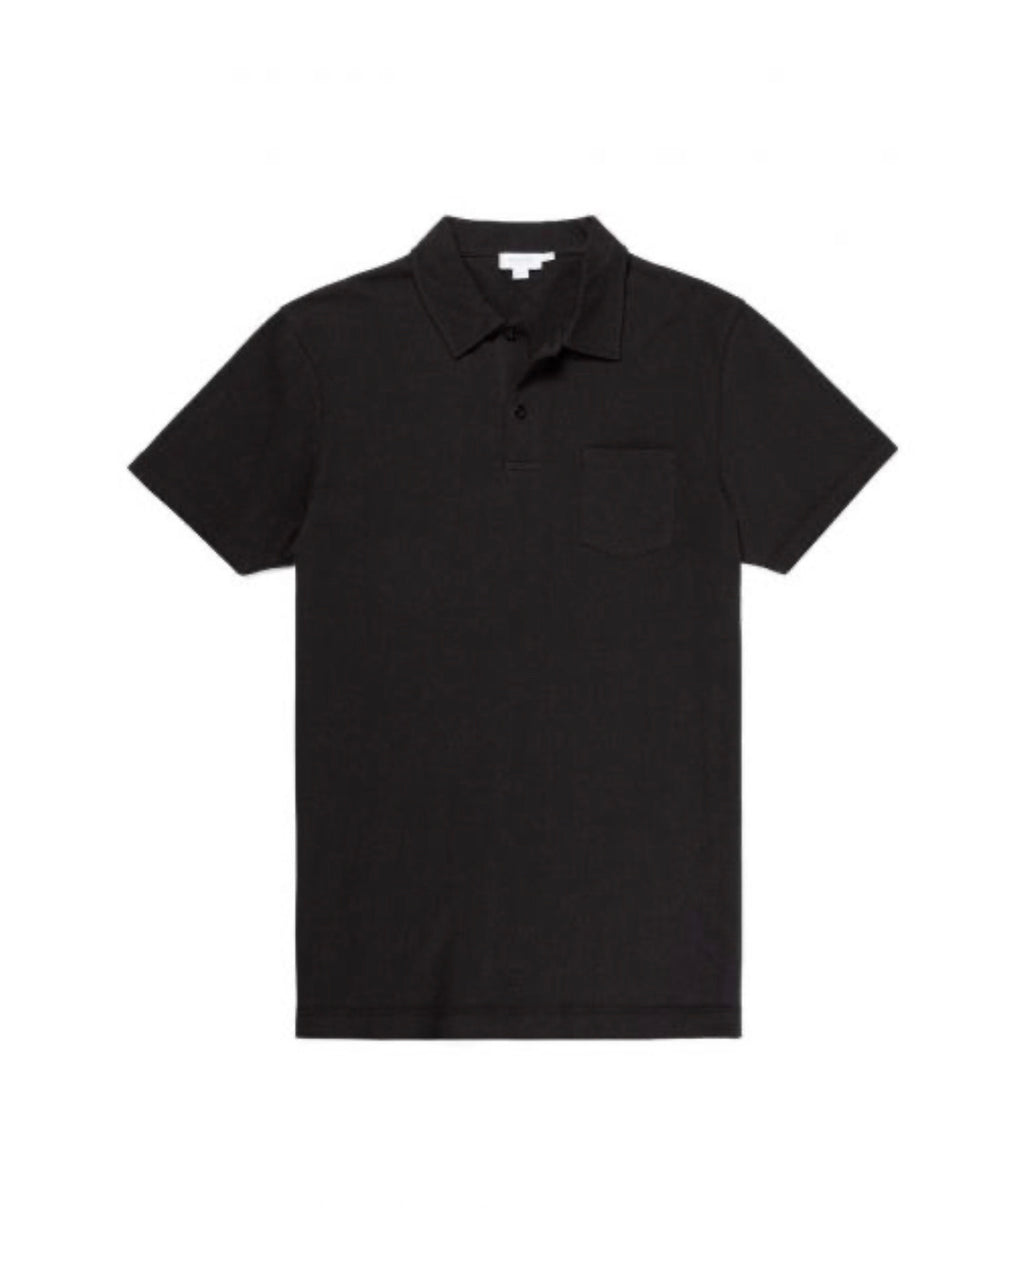 Black Cotton Riviera Polo Shirt